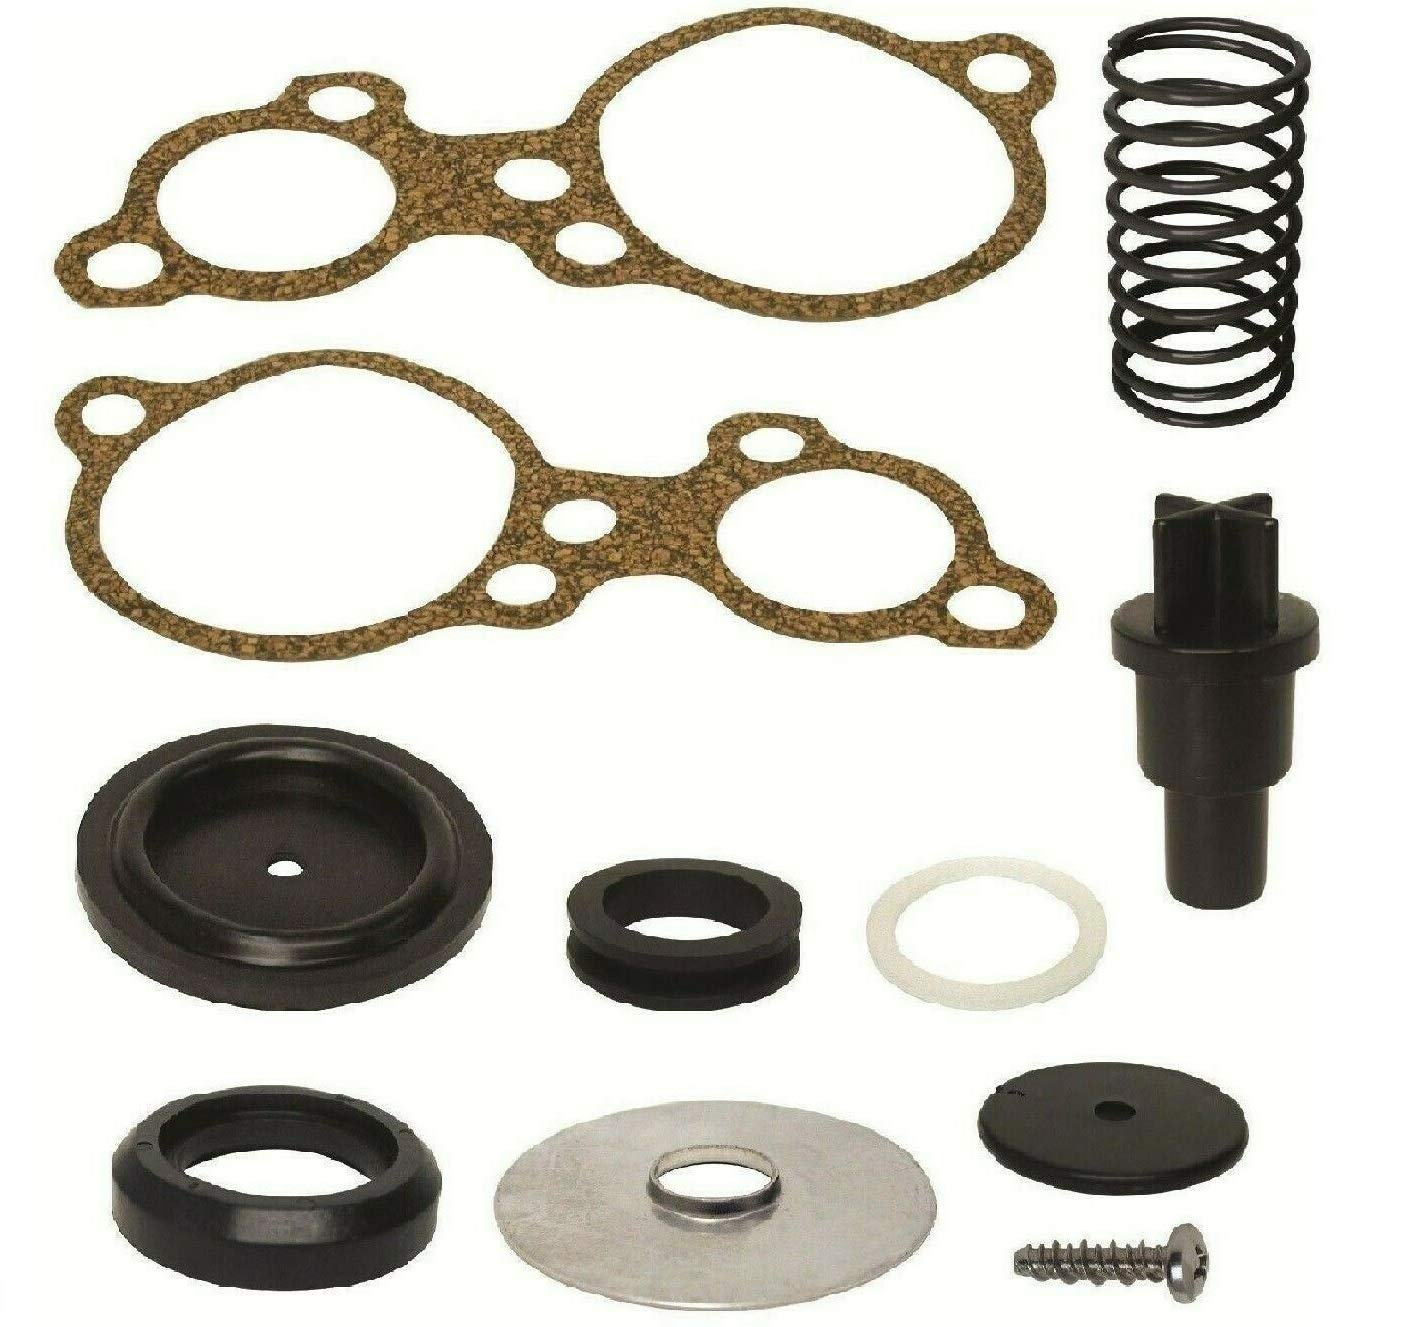 GLM Poppet Valve Kit for Mercury Mariner 135 150 175 200 Magnum II XR4 XR6 EFI DFI Hp V6 Replaces Mercury Part Number: Read Item Description for Exact Applications by GLM